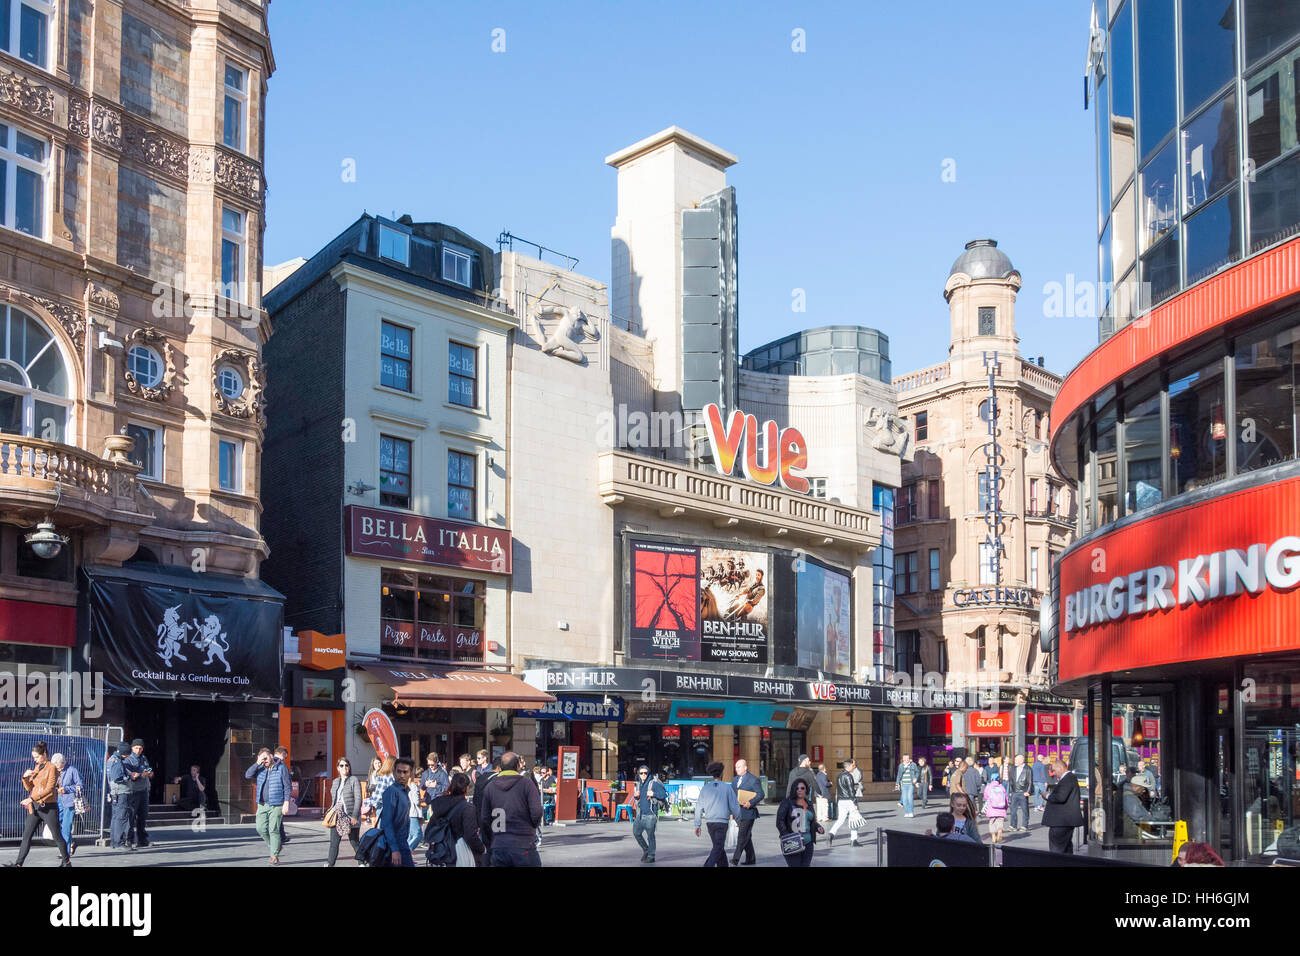 Vue Leicester Square Cinema, Cranbourn Street, Leicester Square, City of Westminster, Greater London, England, United Stock Photo